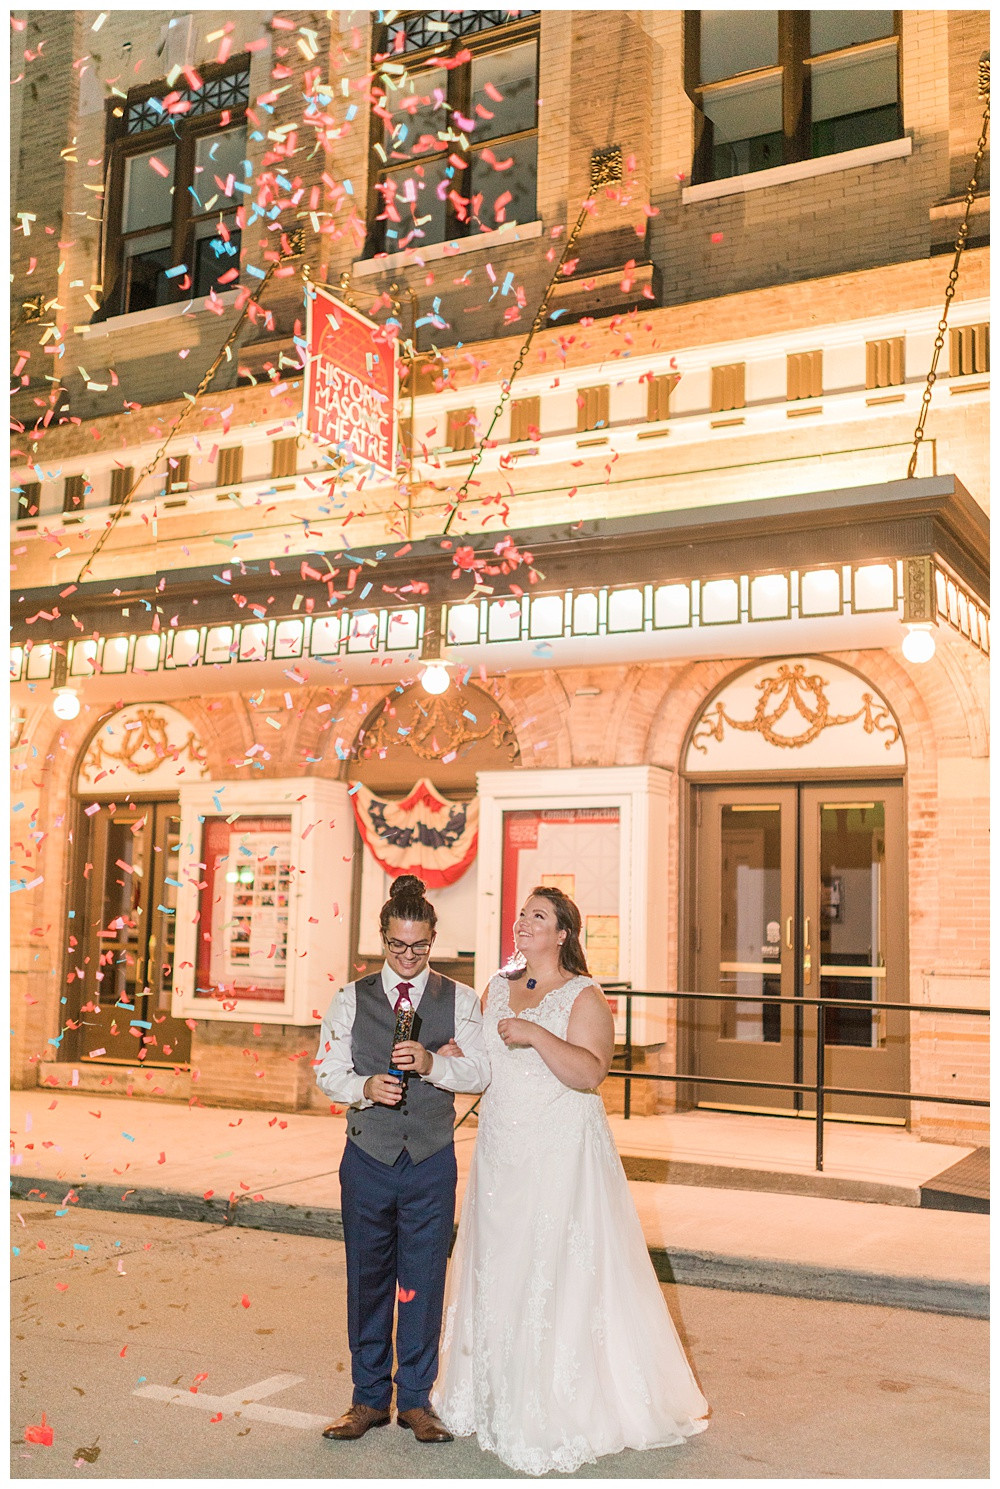 Virginia Wedding Photography, Best of 2019, Austin & Austin Photography, Historic Masonic Theatre, Clifton Forge, VA